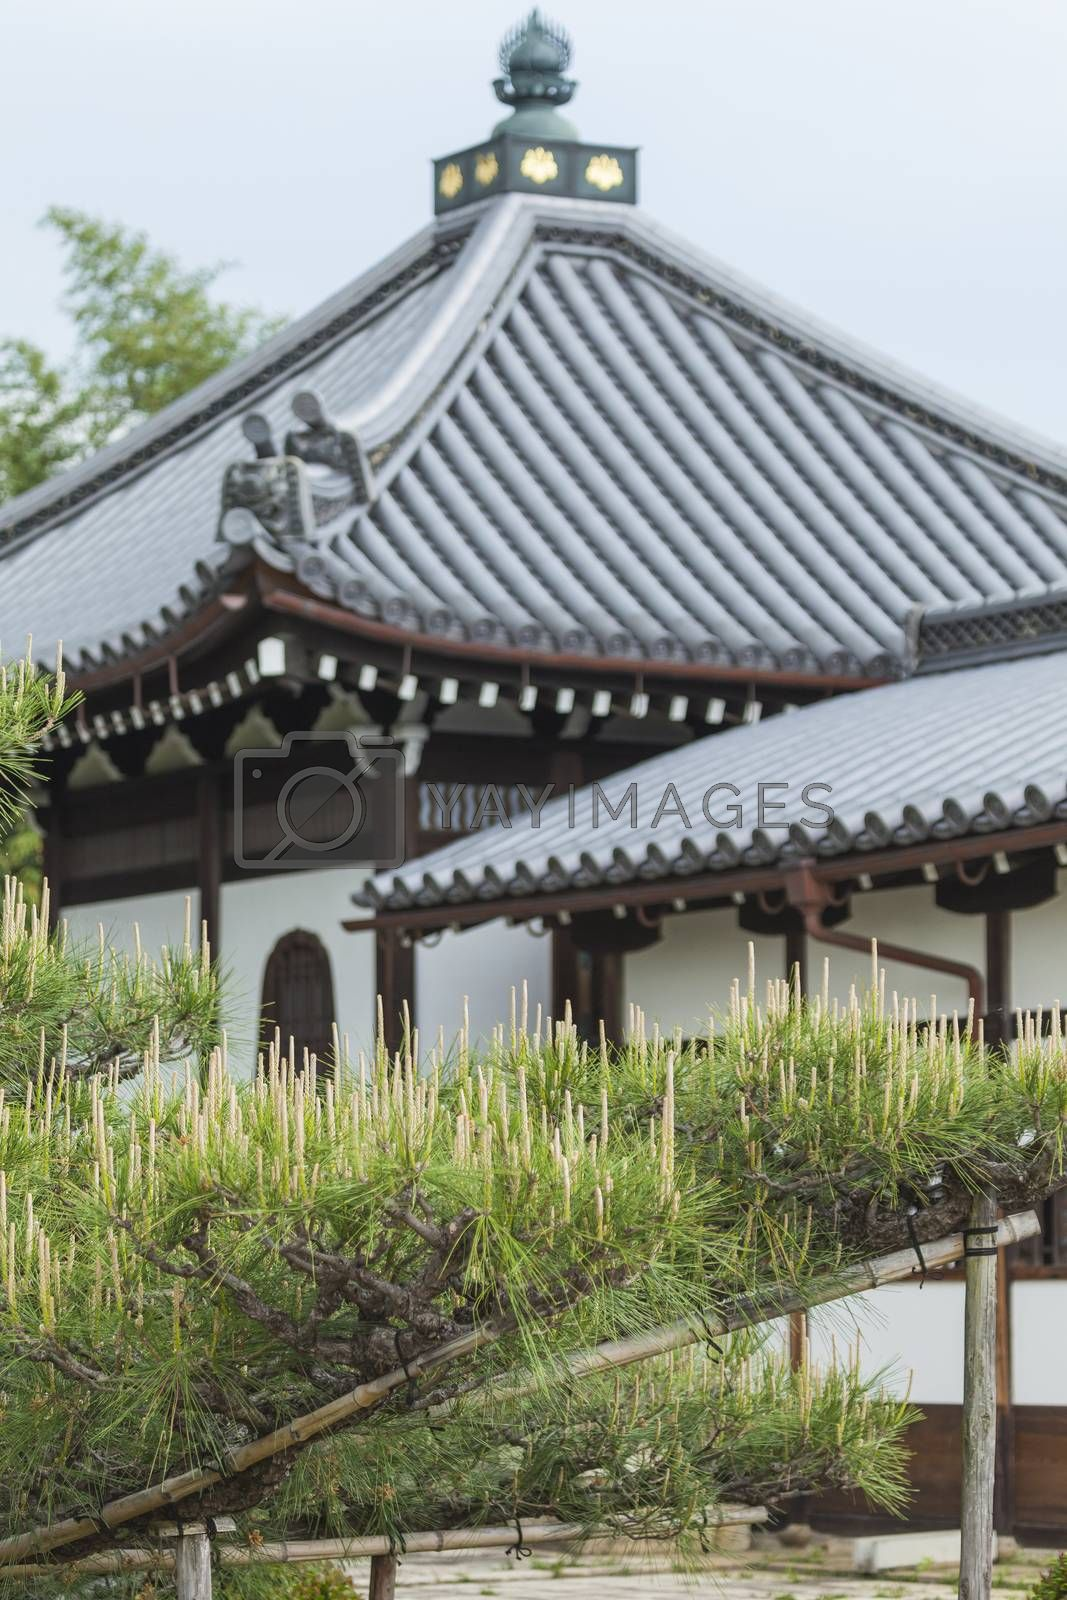 To-ji (East Temple) is a Buddhist temple of the Shingon sect in Kyoto, Japan.